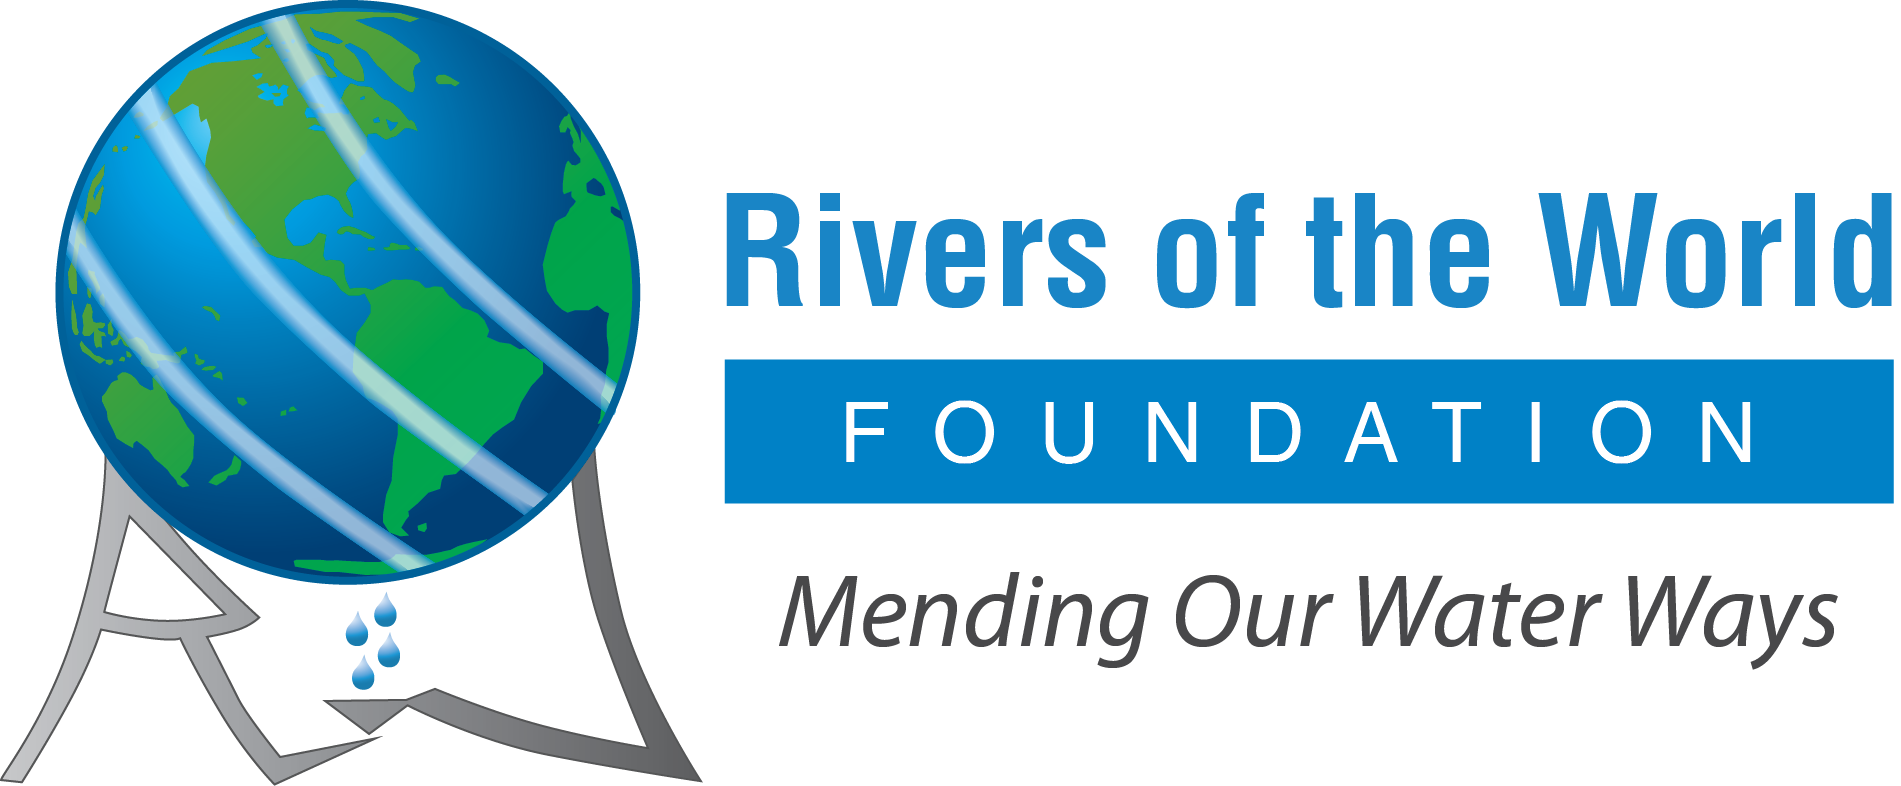 row foundation logo